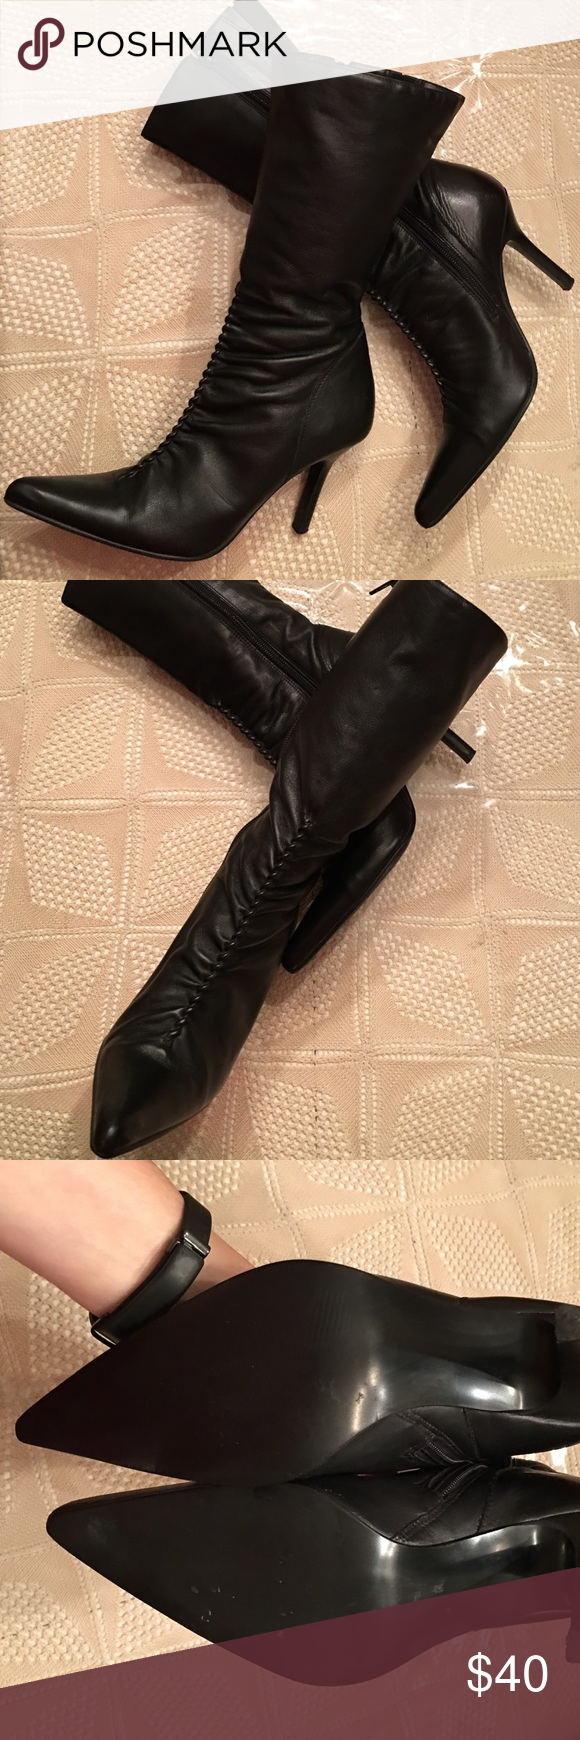 Well taken care of. Leather is flawless Steve Madden Shoes Heeled Boots